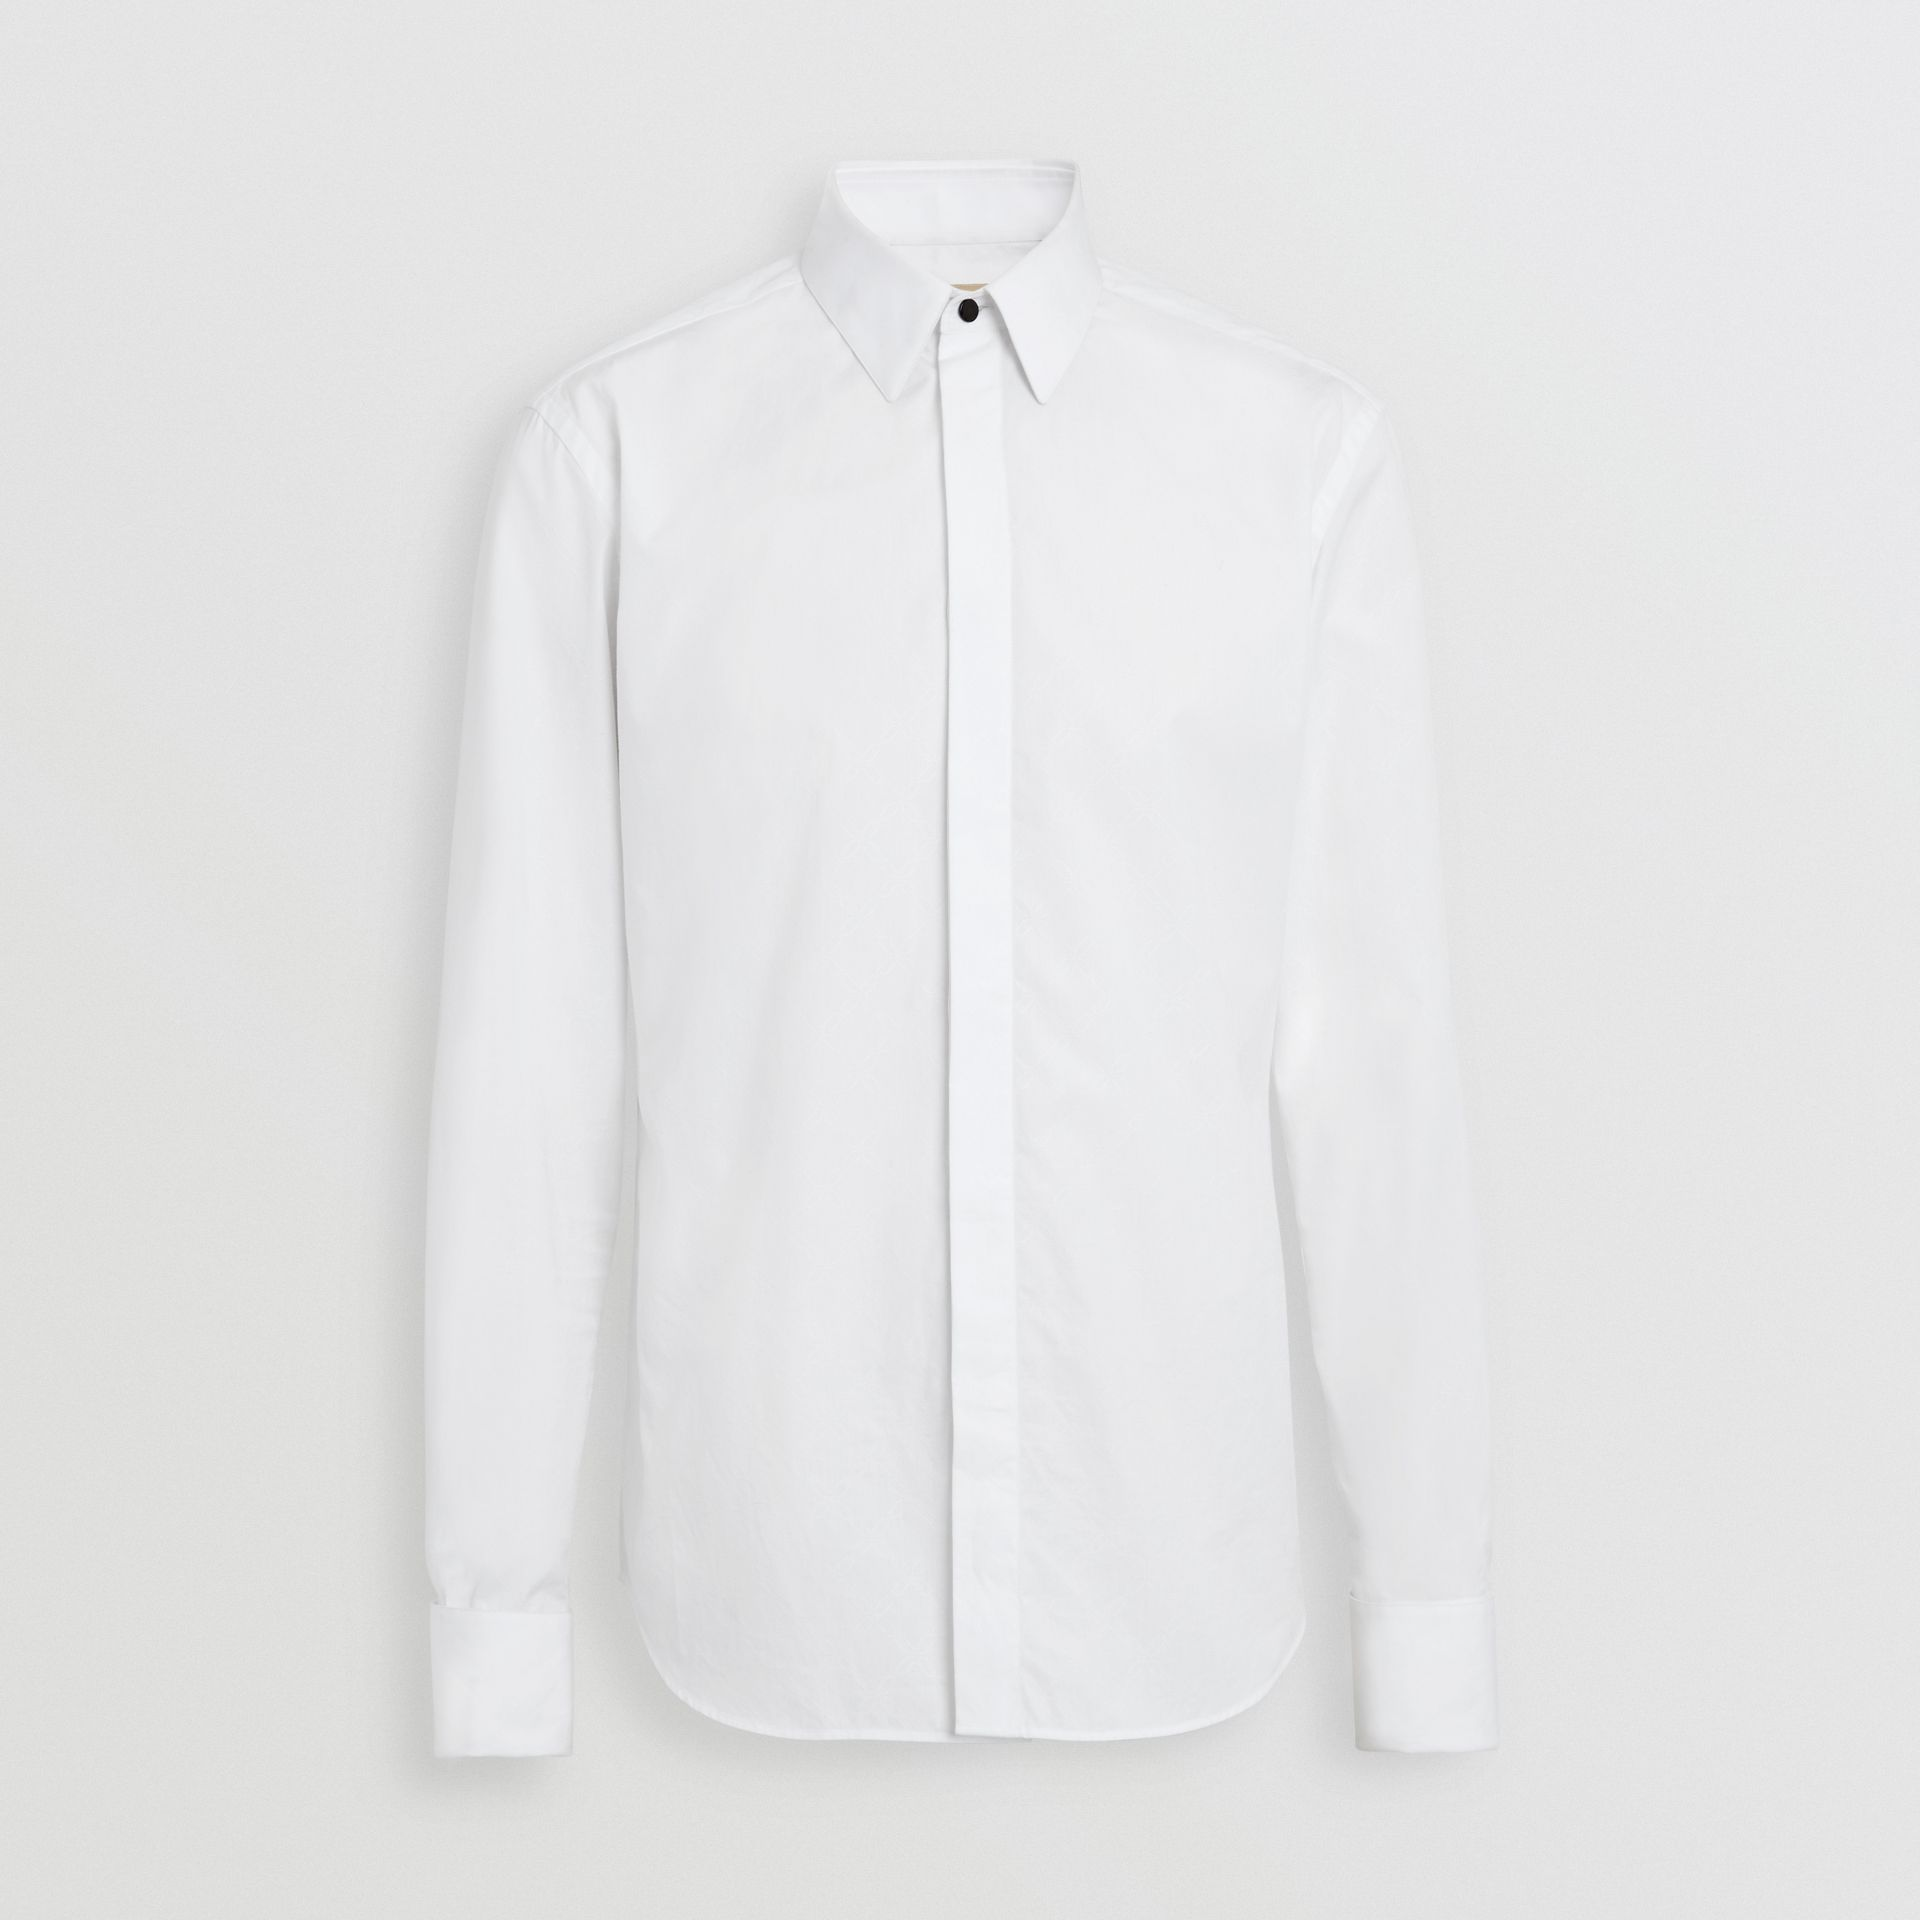 Classic Fit Link Cotton Jacquard Dress Shirt in White - Men | Burberry Australia - gallery image 3